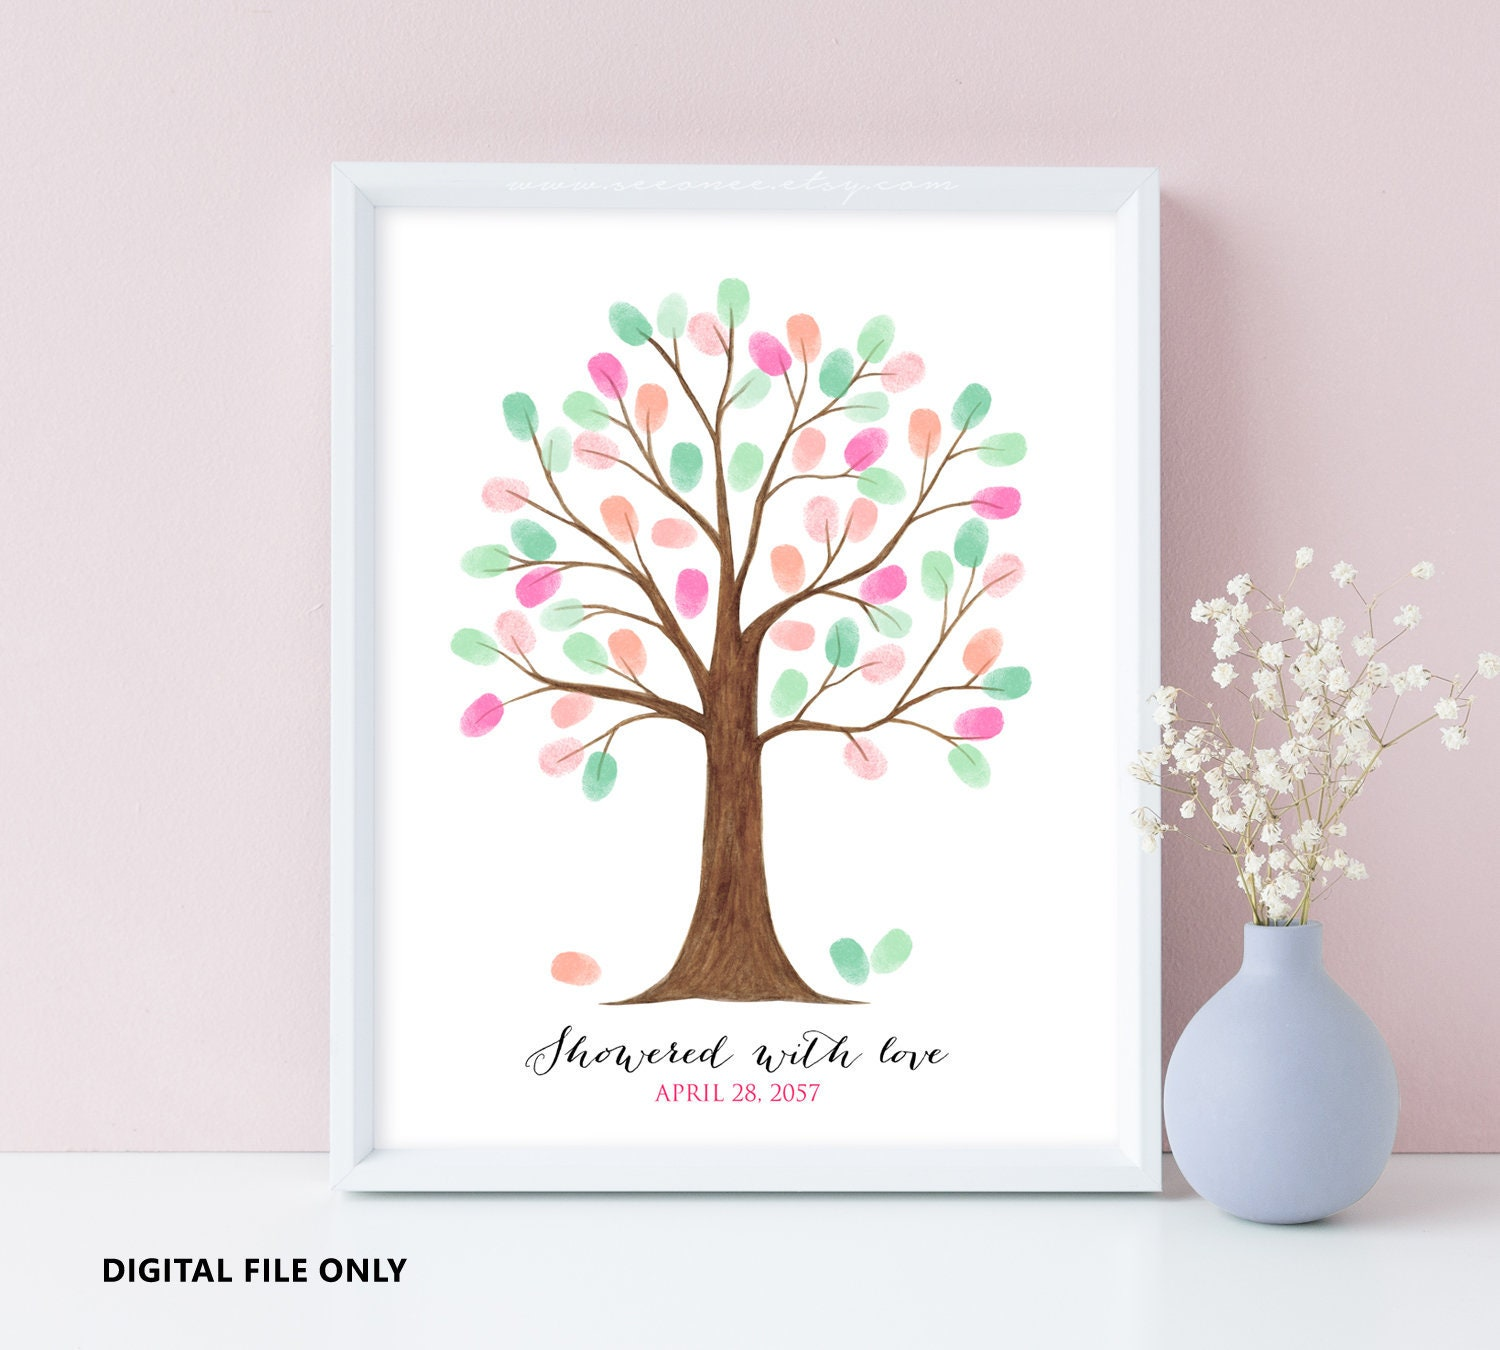 Judith tree instant download fingerprint wedding thumbprint bridal shower decoration birthday party gift event memory colored guest book